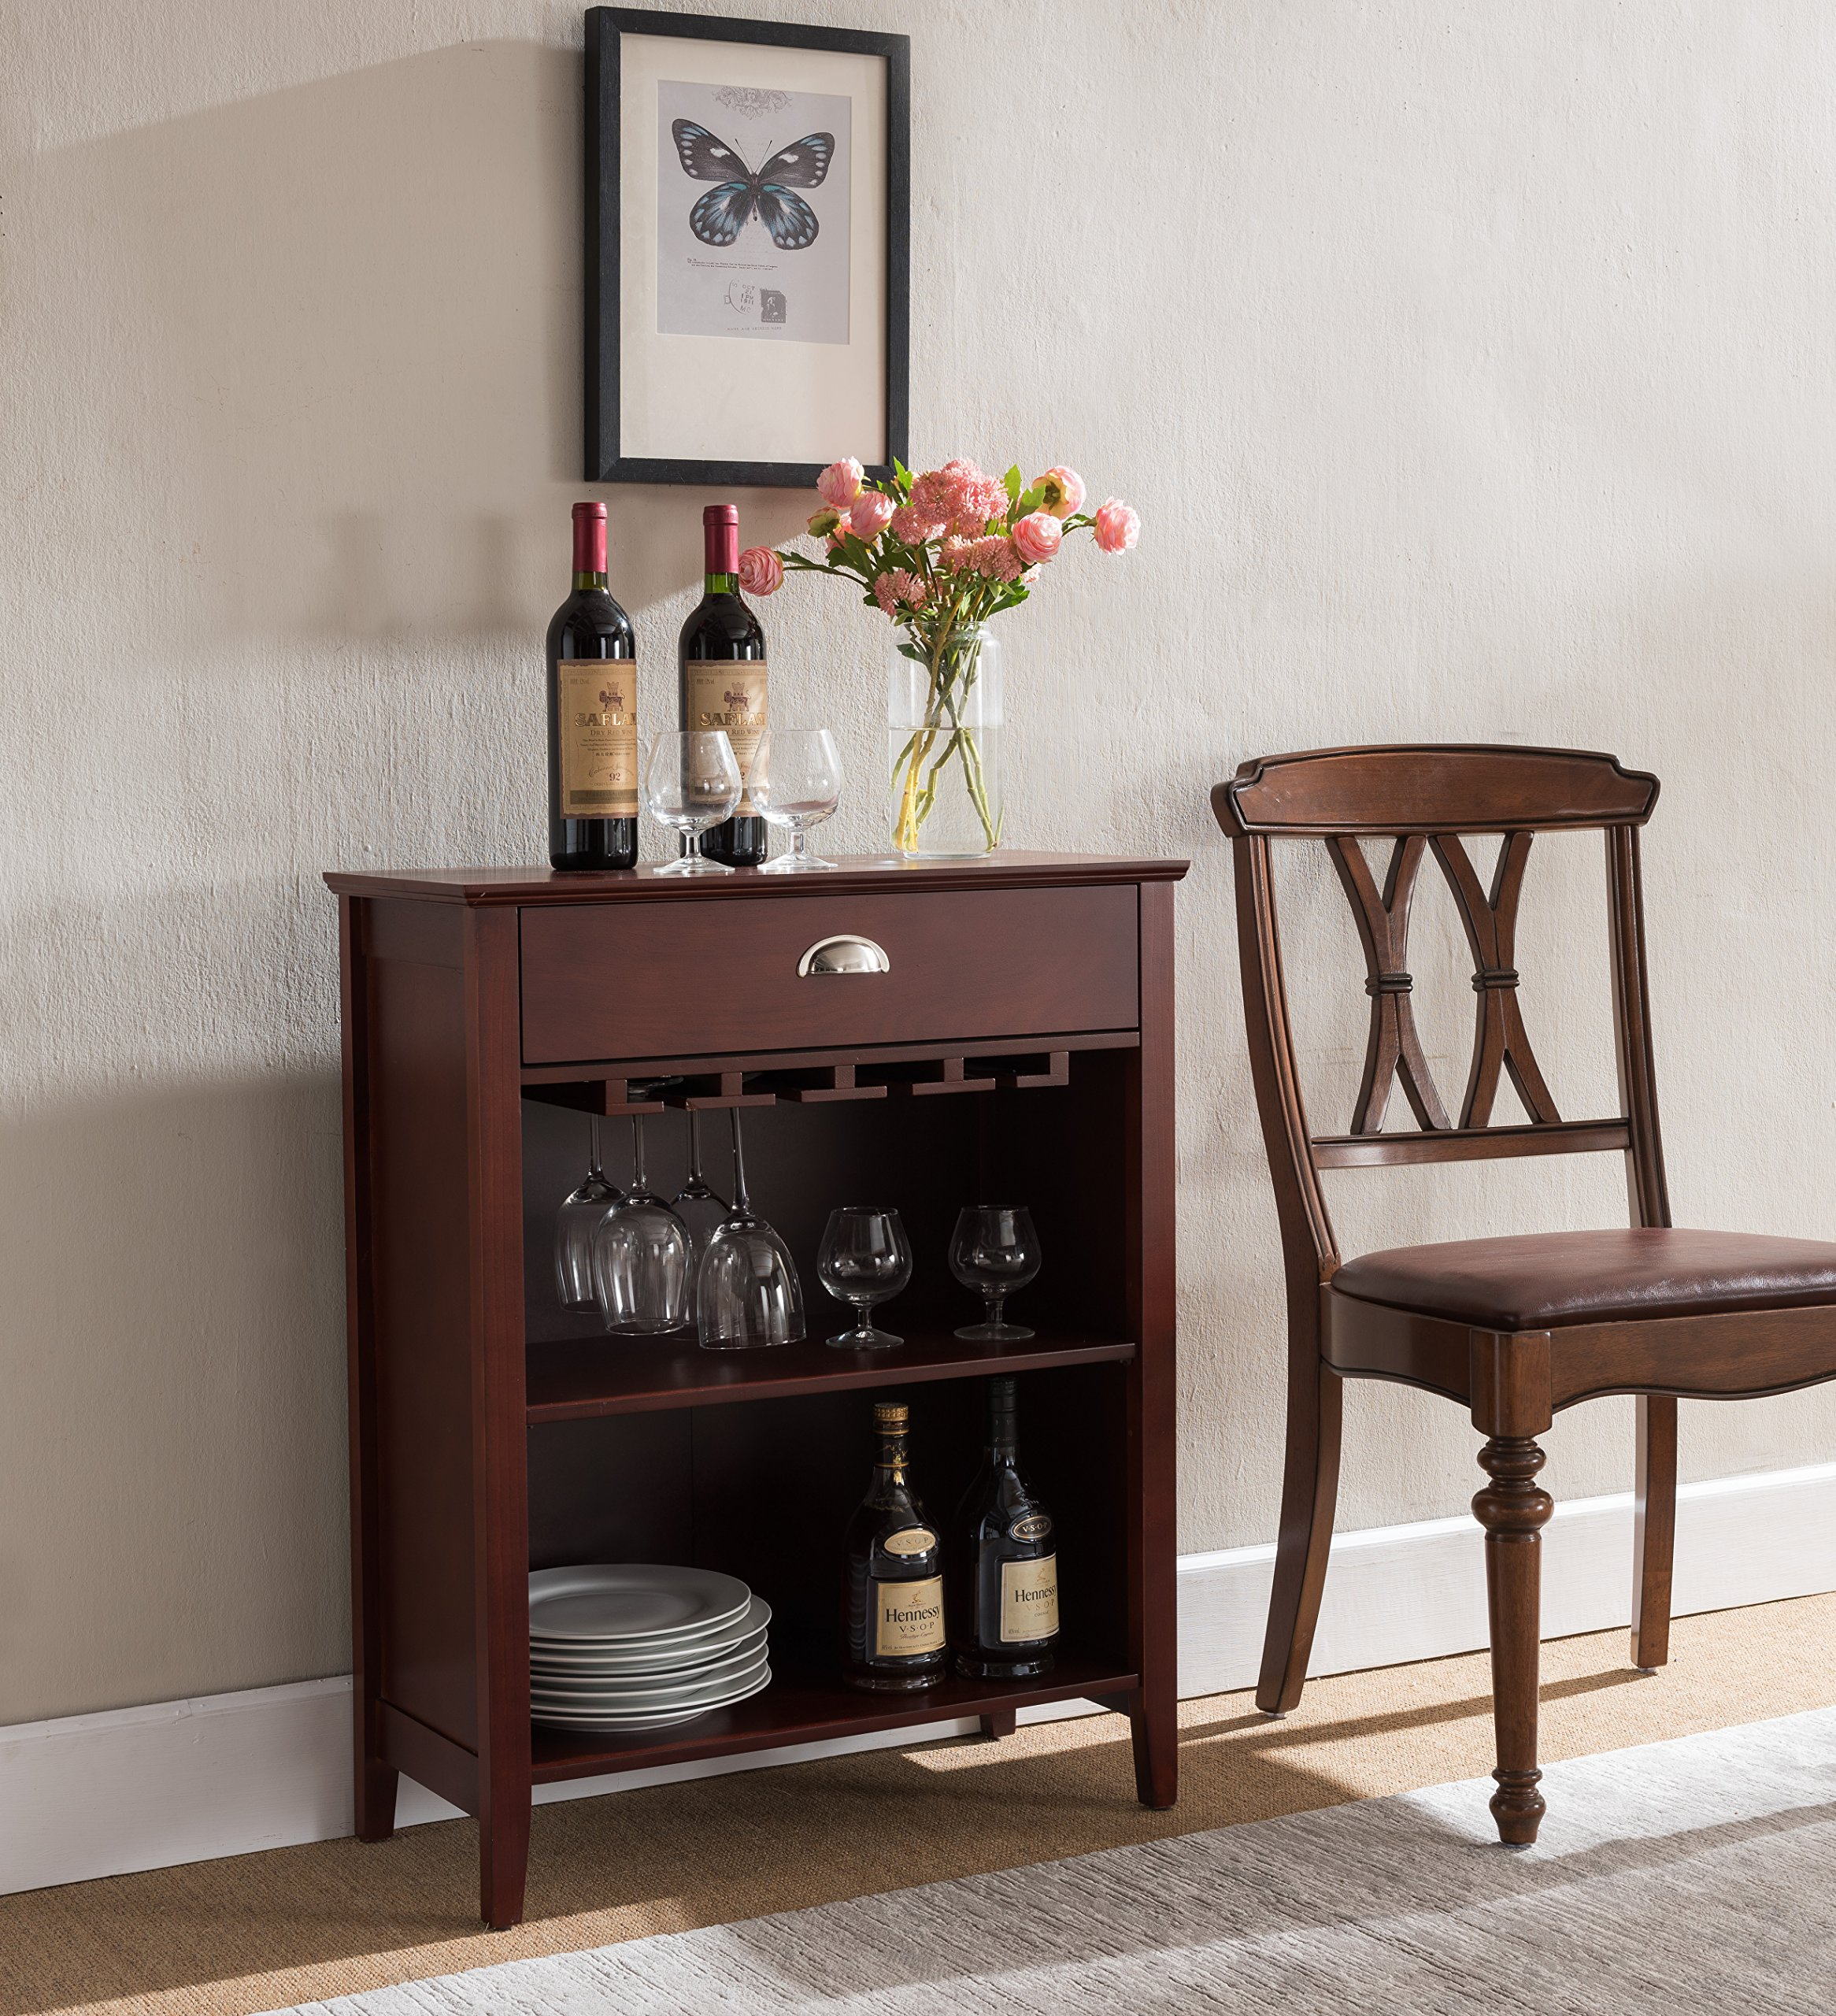 Kings Brand Furniture Dark Cherry Finish Wood Wine Buffet Storage Cabinet with Drawer by Kings Brand Furniture